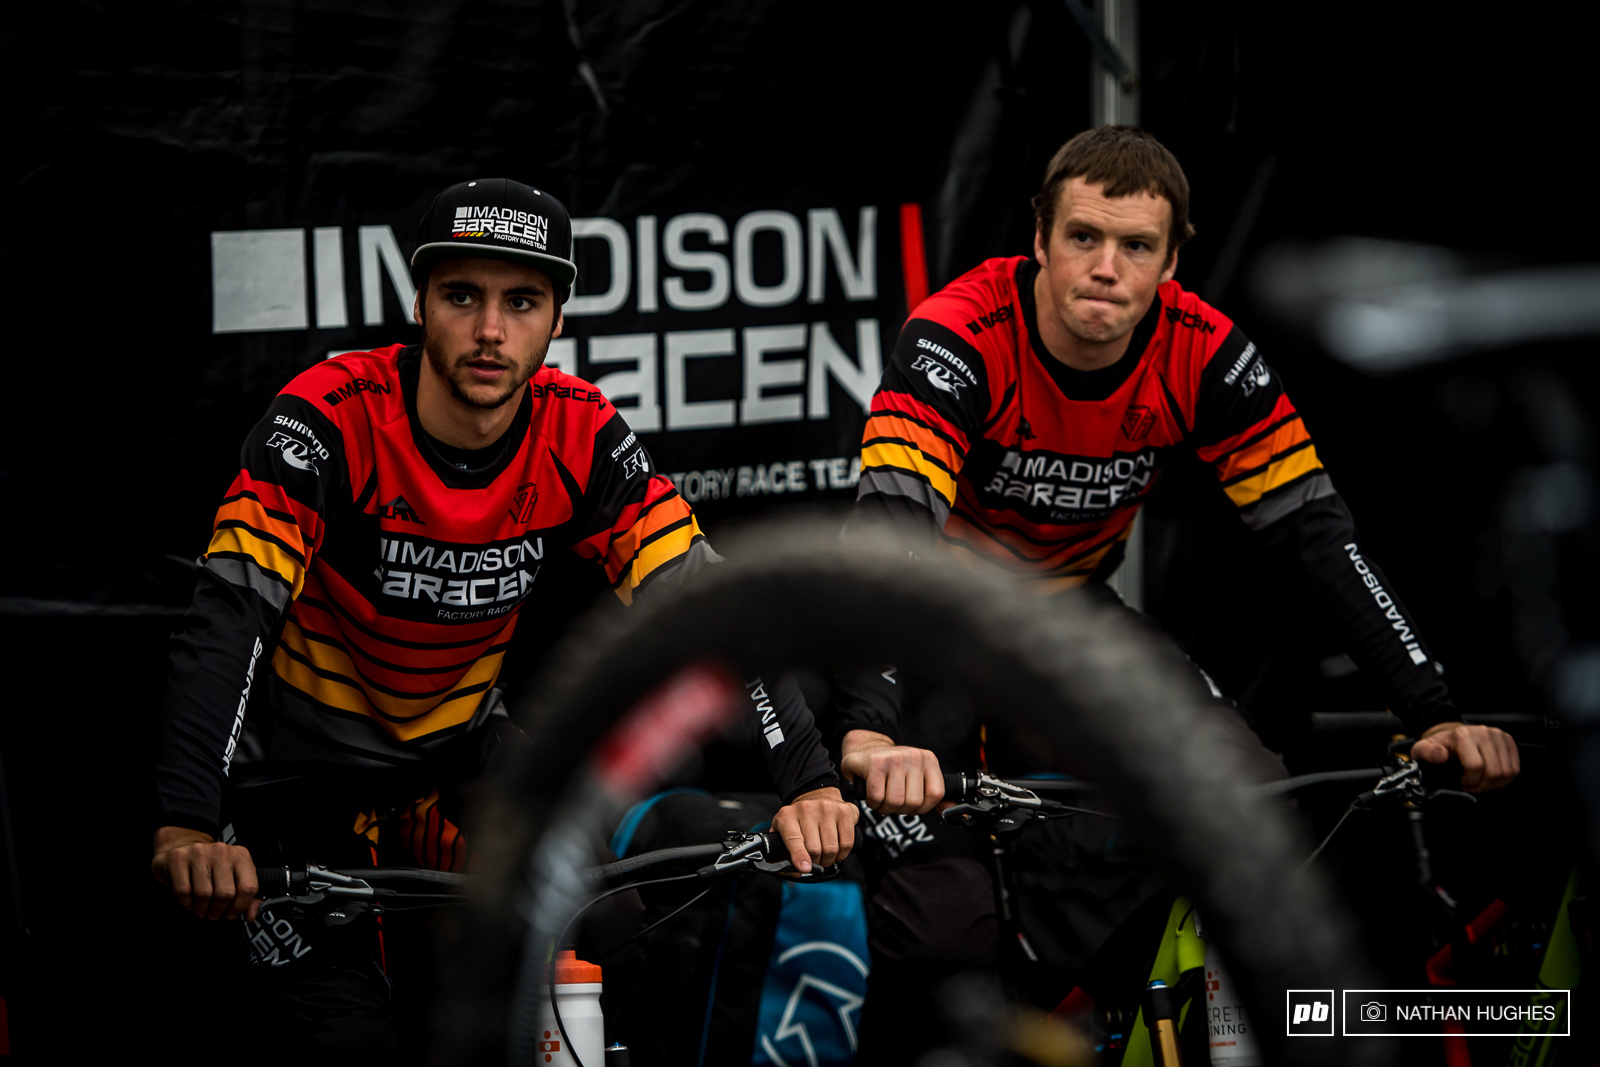 Warm up spins at the Madison Saracen pit with Simmons and Marin.